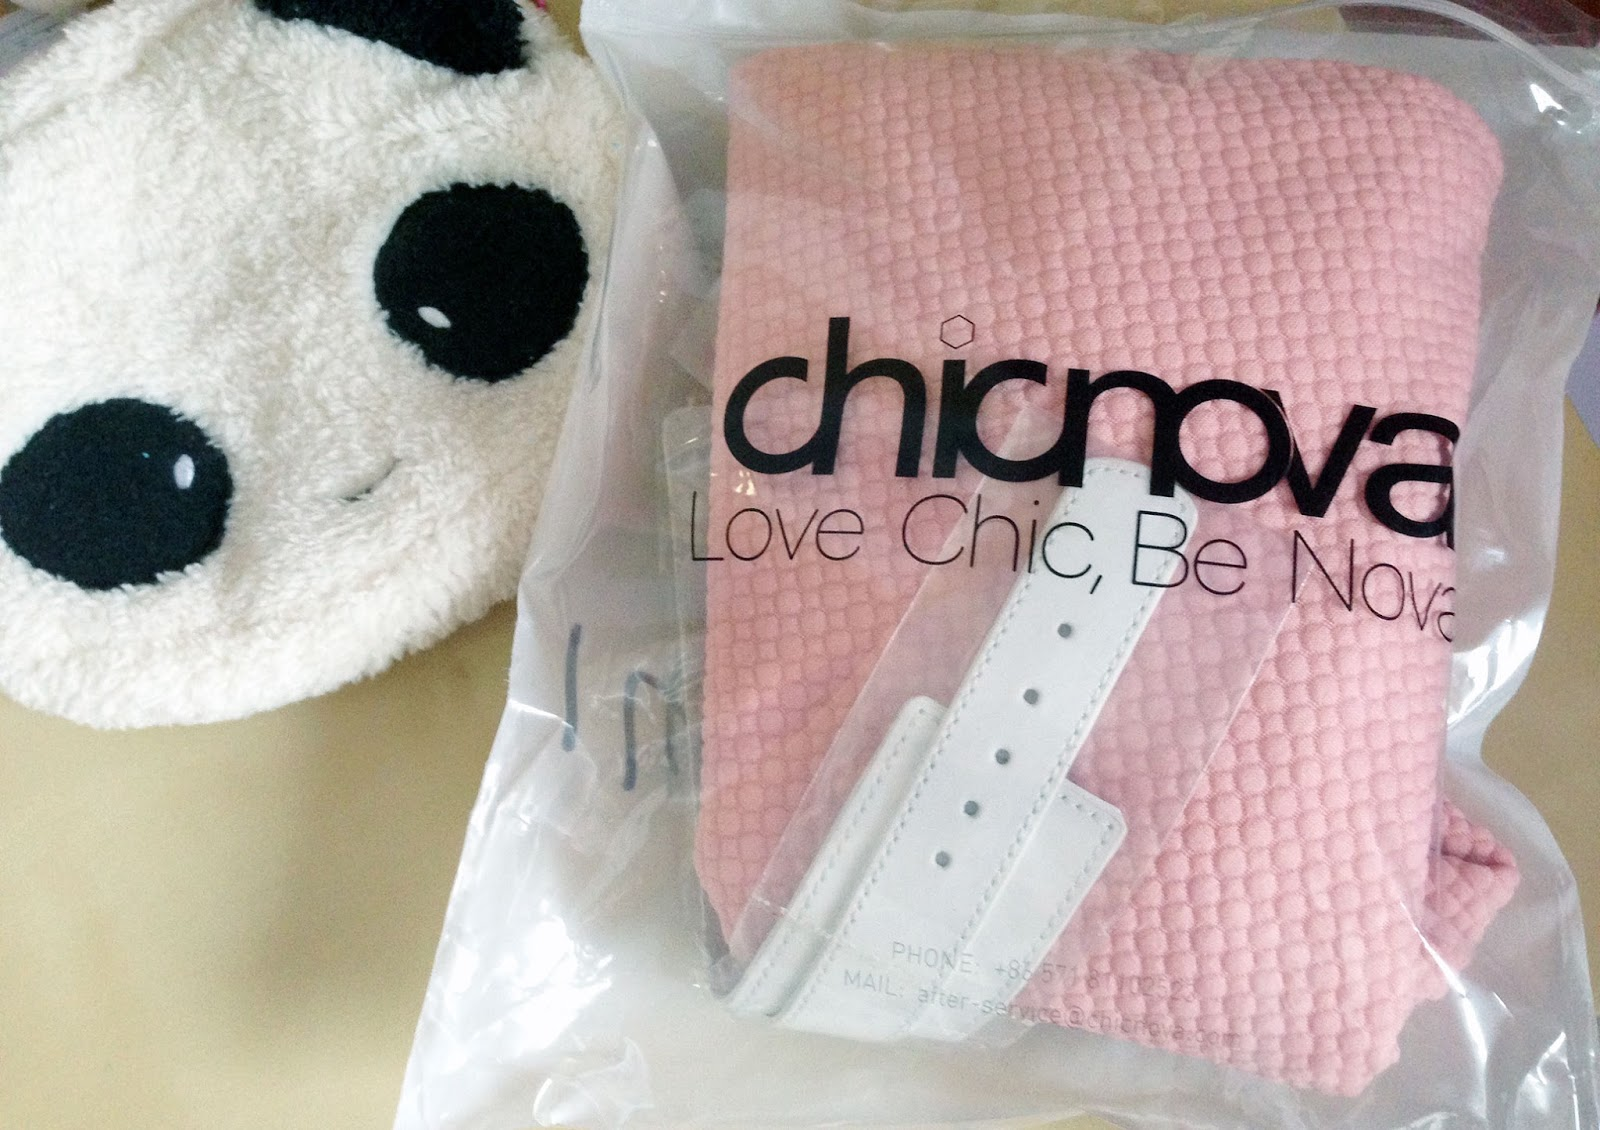 Chicnova packaging - the pink skirt, patterned tights, and leather bracelet were all folded neatly into the Chicnova bag